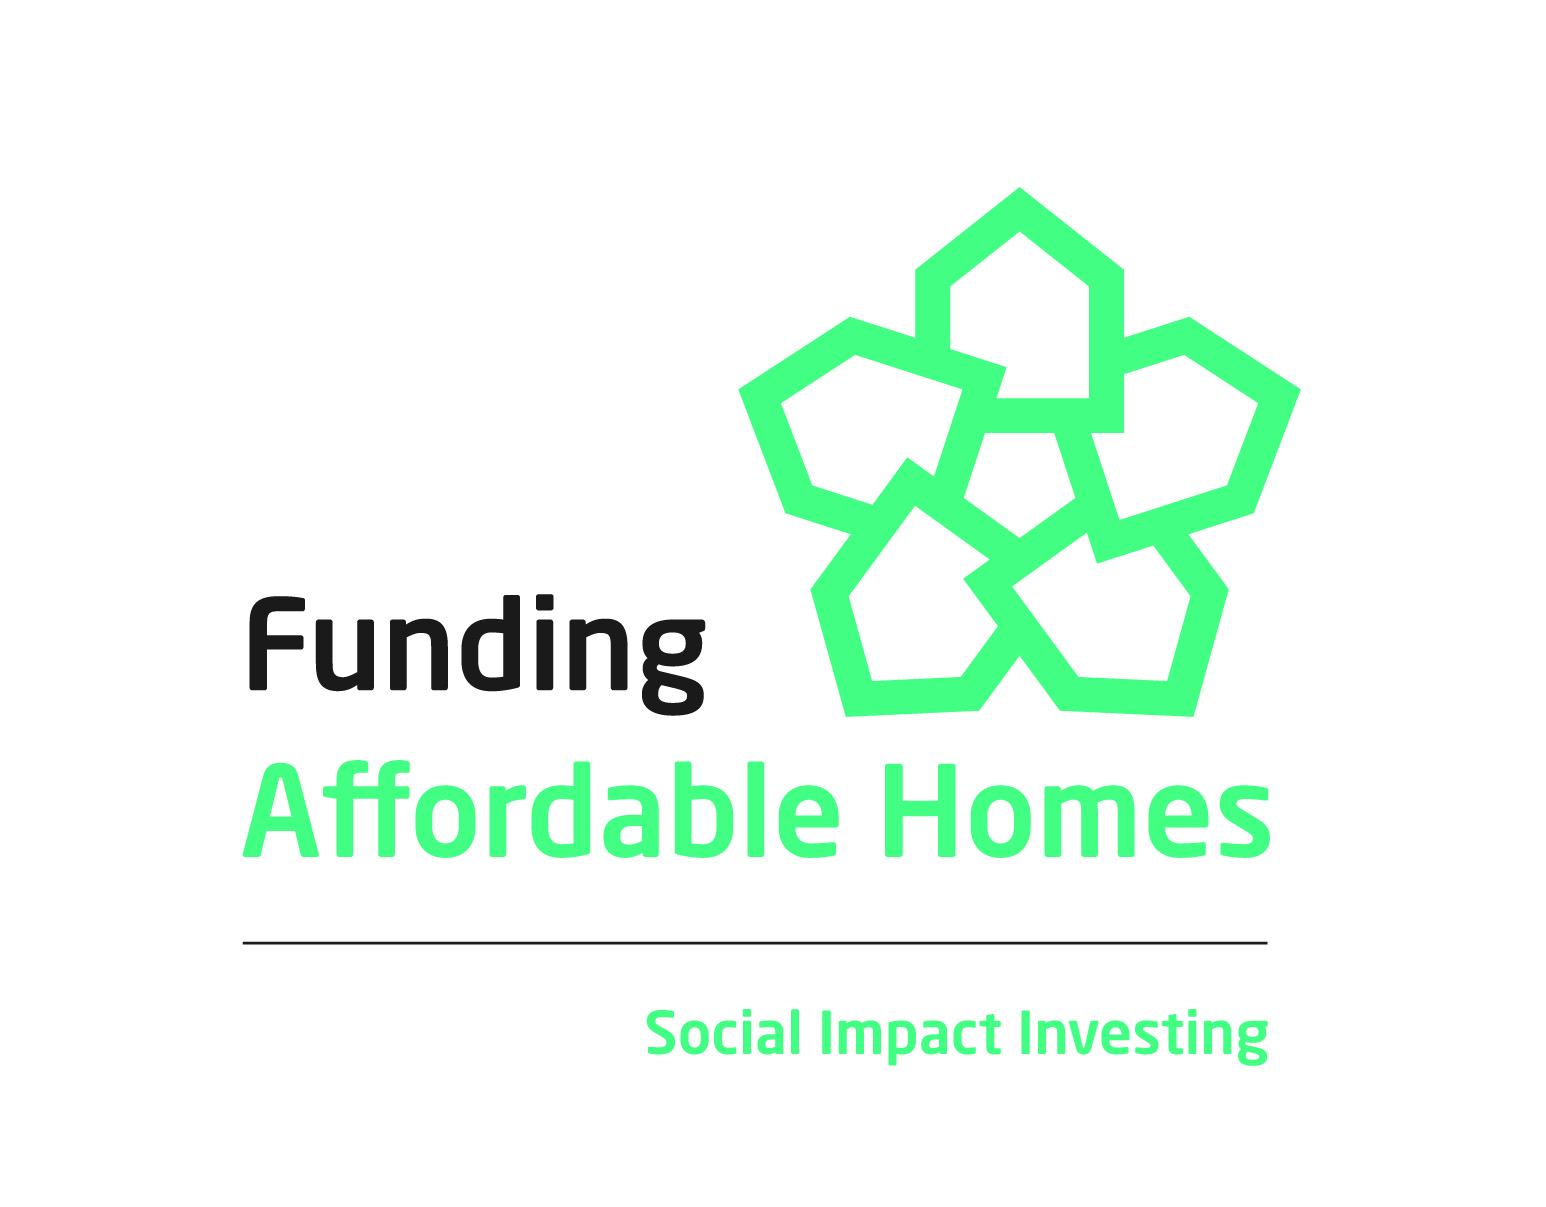 Funding Affordable Homes